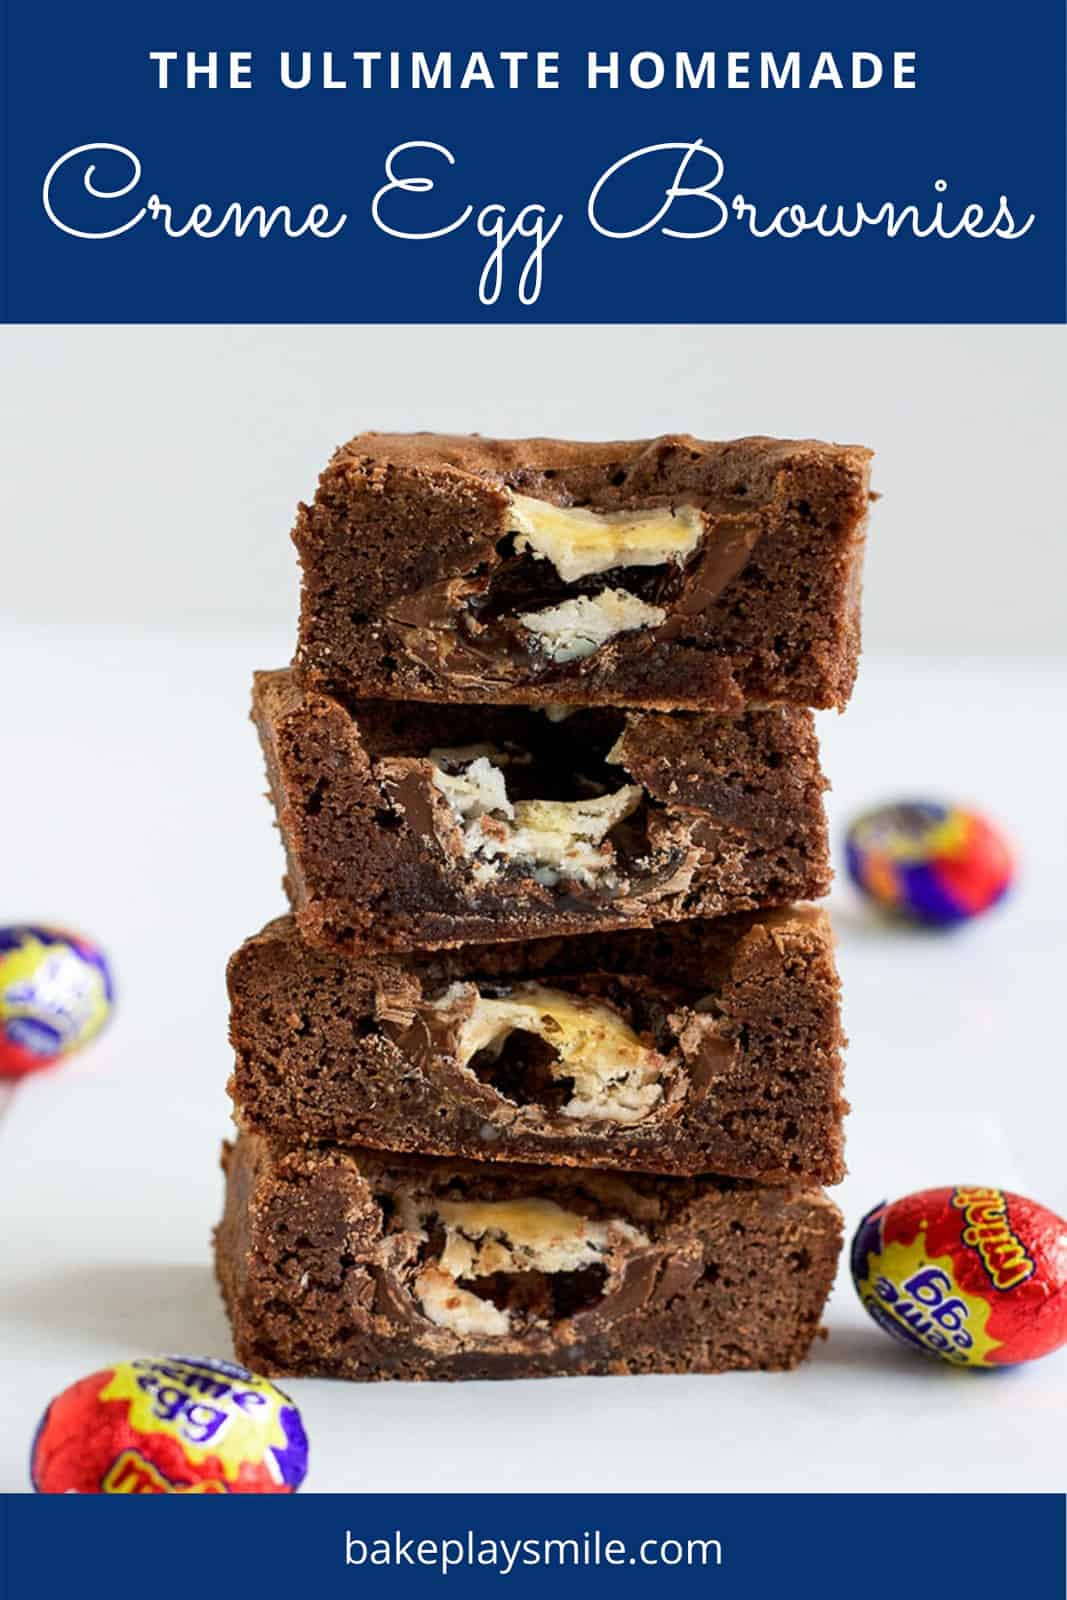 Pieces of chocolate brownie filled with creme eggs.